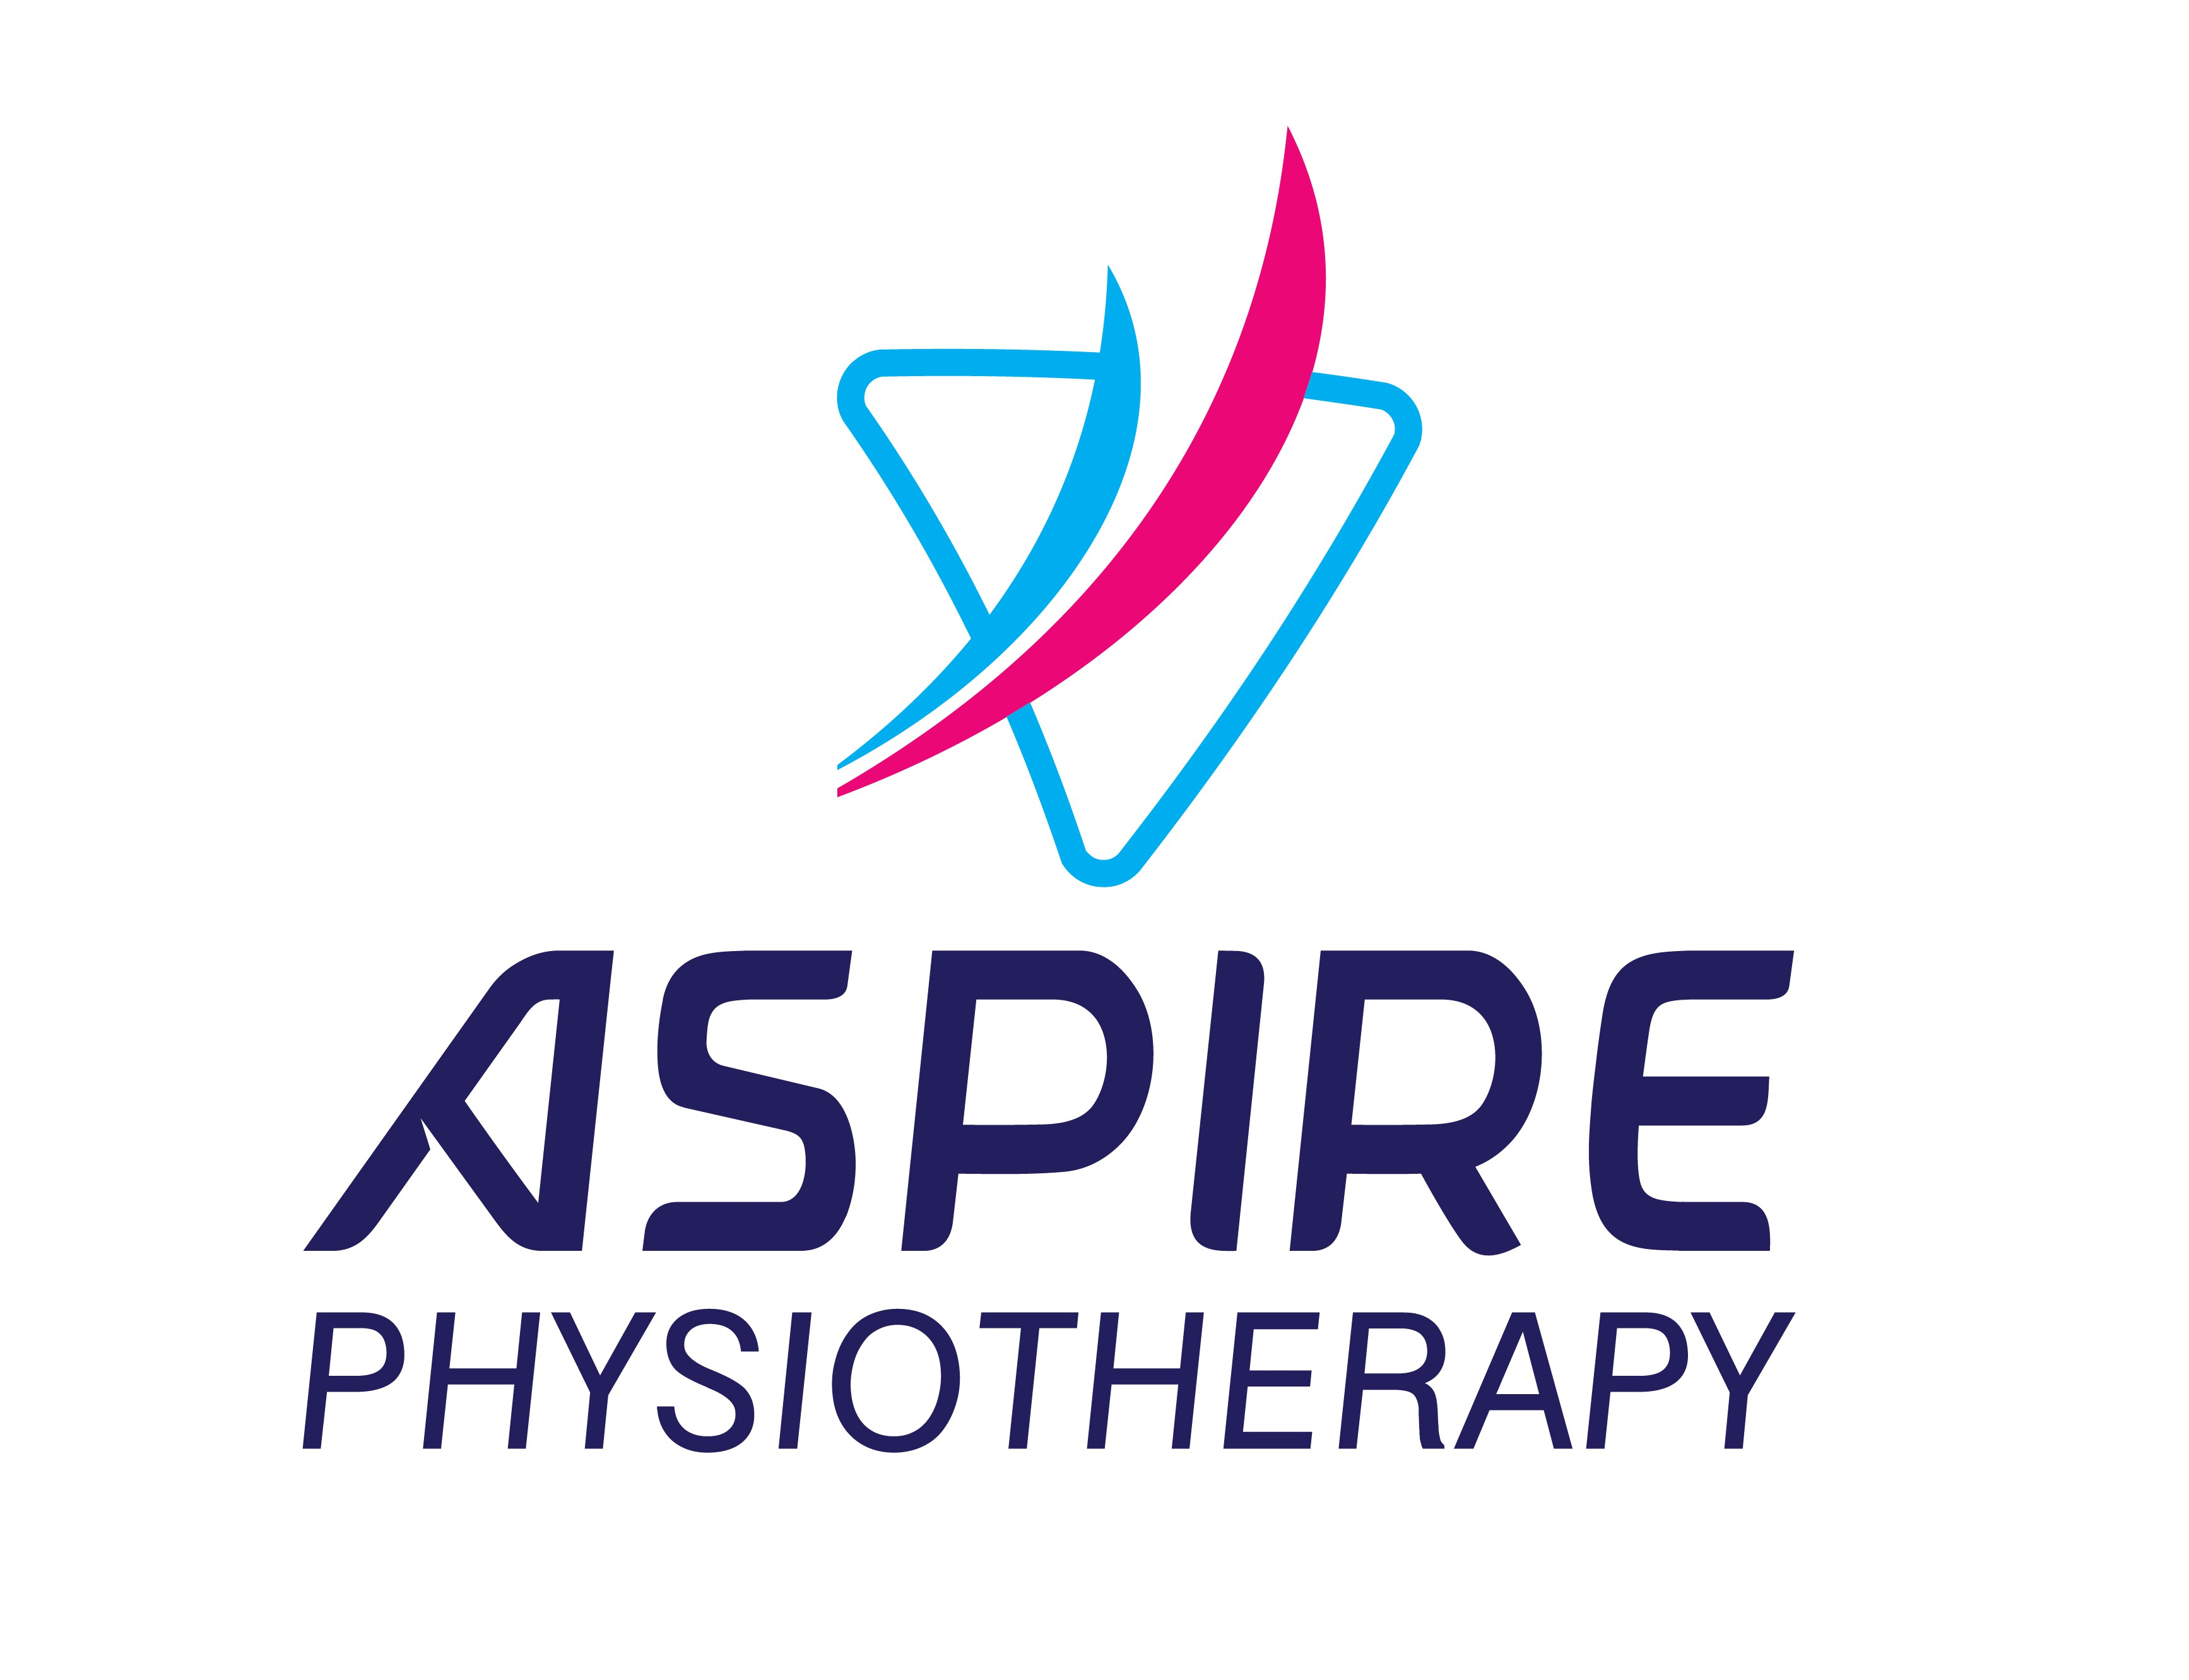 Sleek, stylish and modern logo for a new physiotherapy clinic, to make the other clinics envious!